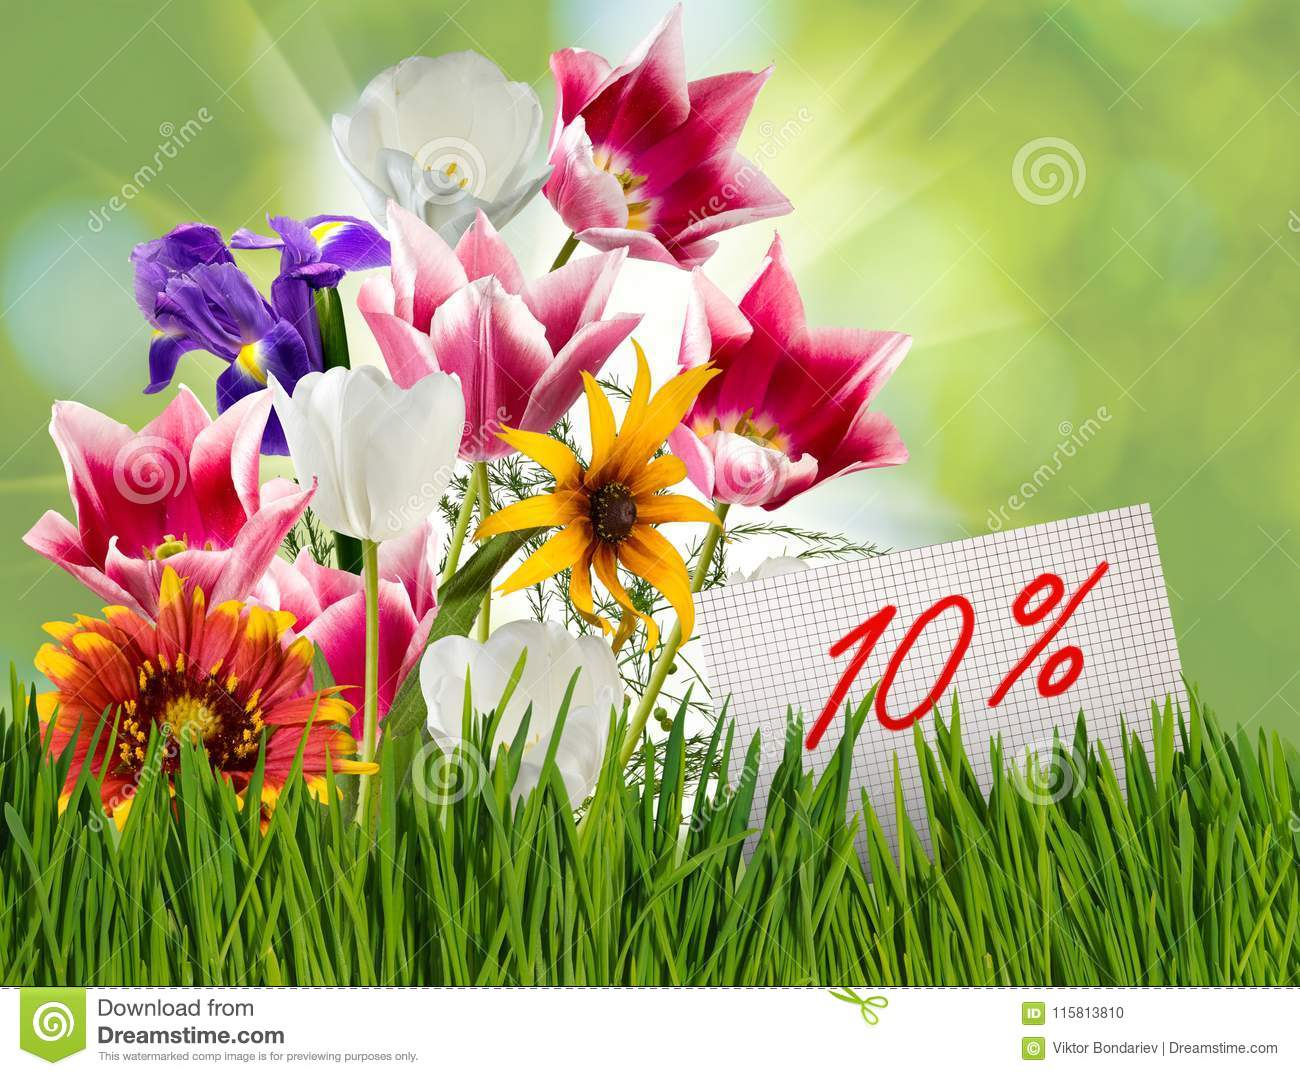 Discount For Sale 10 Percent Discount Beautiful Flowers Tulips In